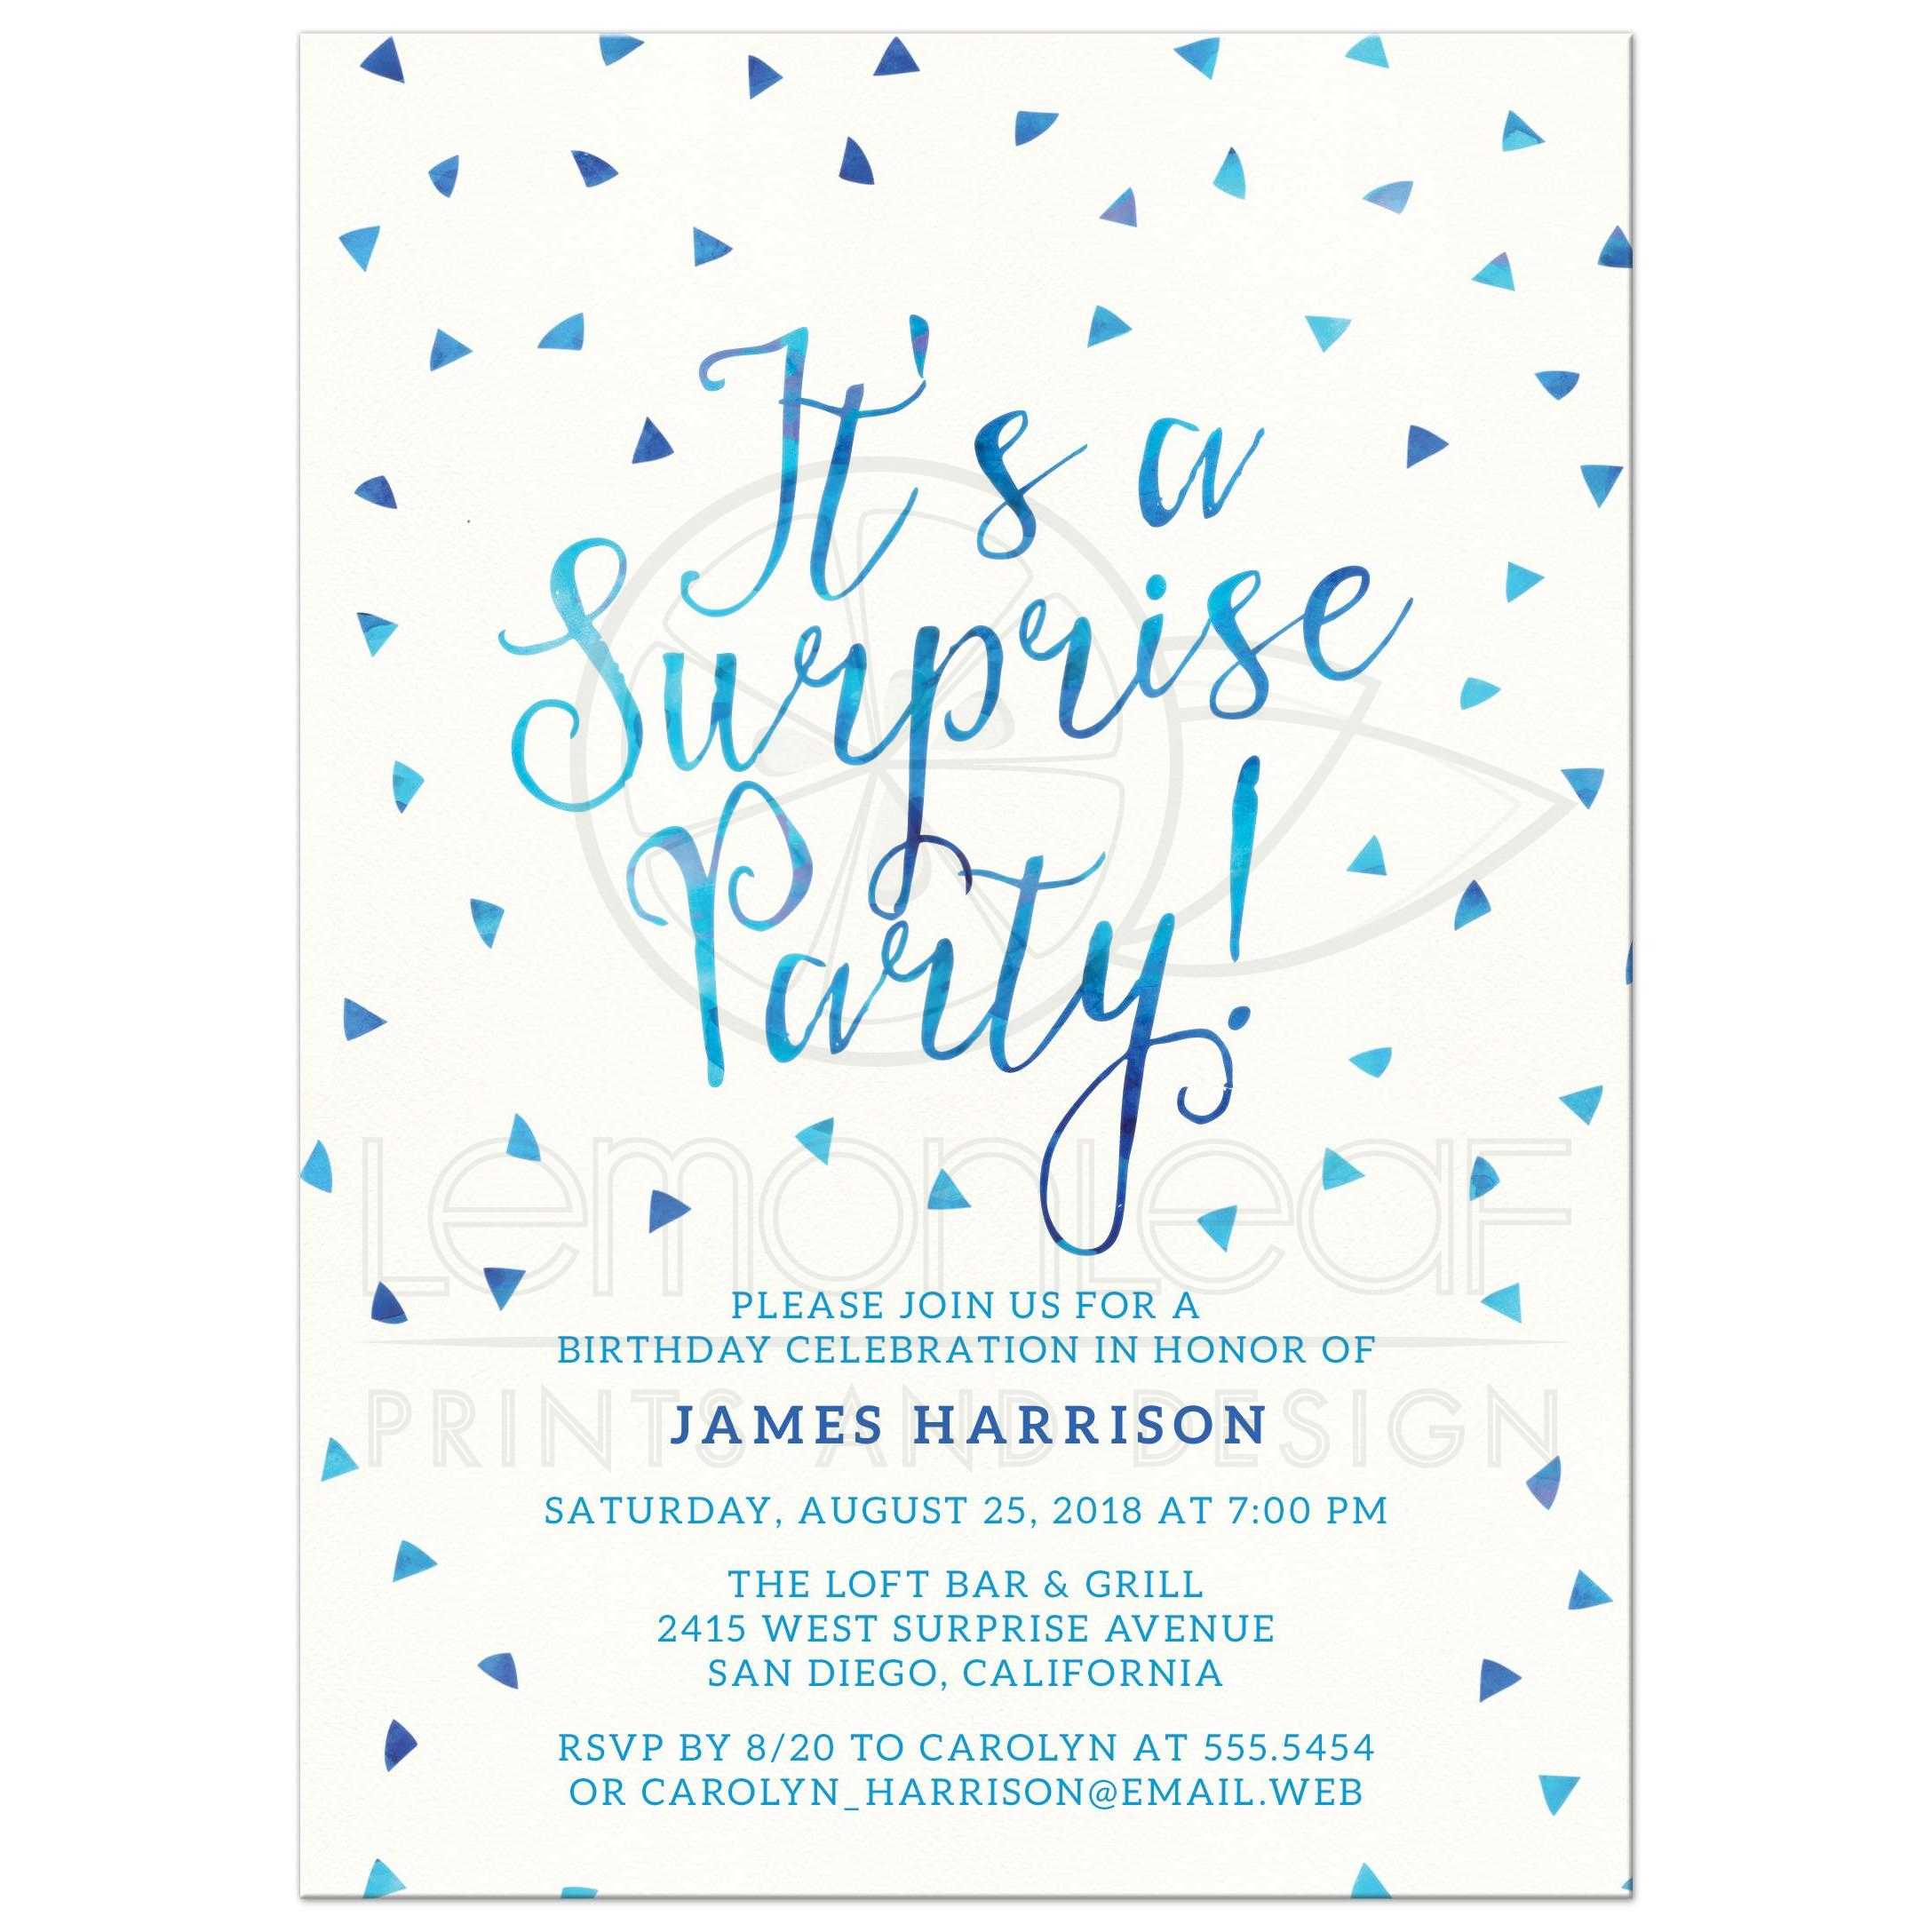 Surprise Birthday Party Invitations Blue Watercolor Triangle Confetti